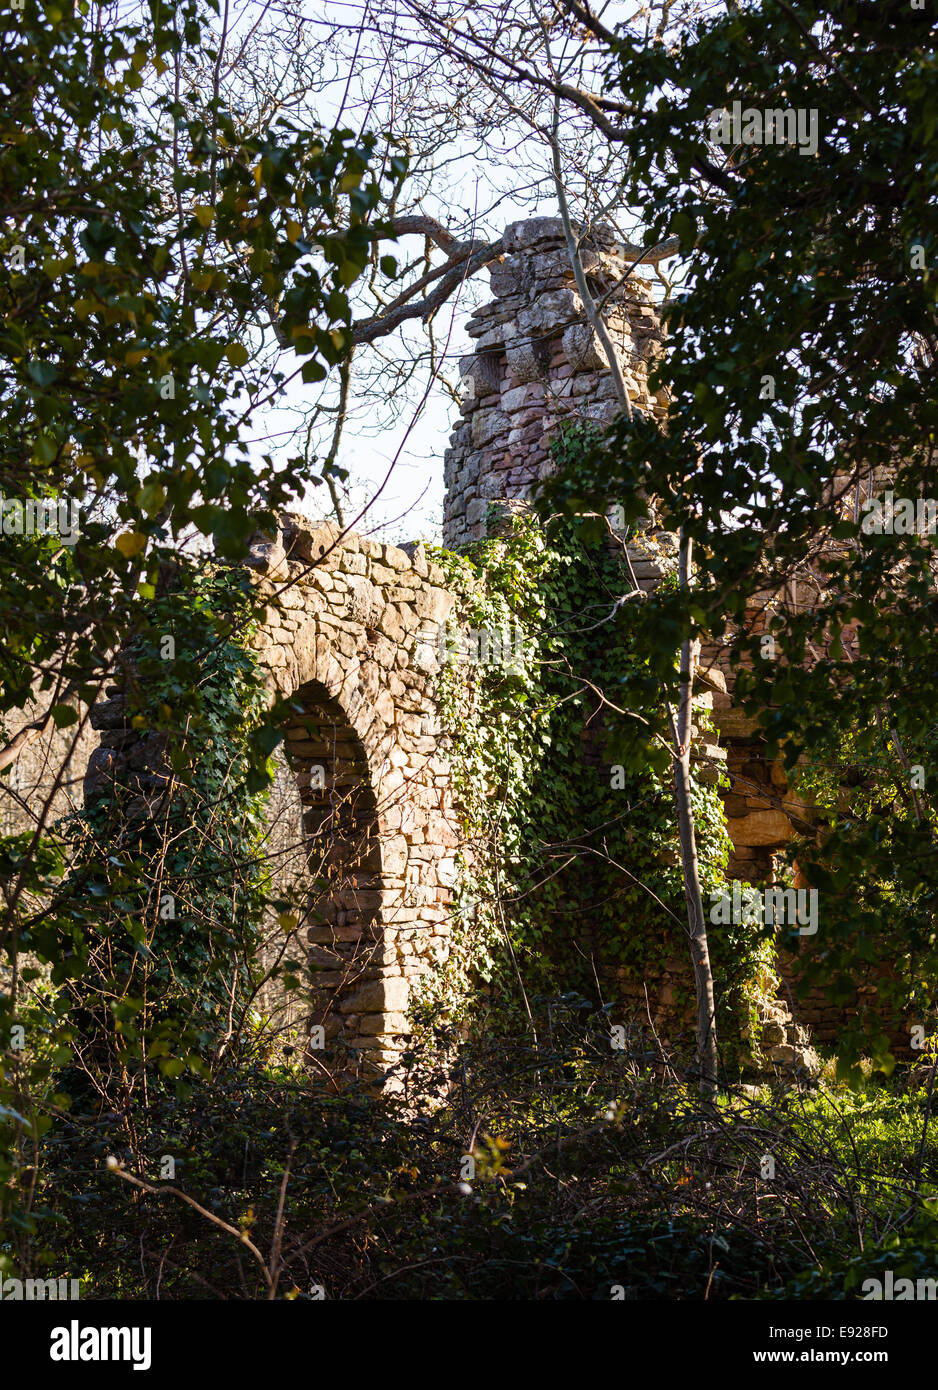 Old ruined castle in woods - Stock Image